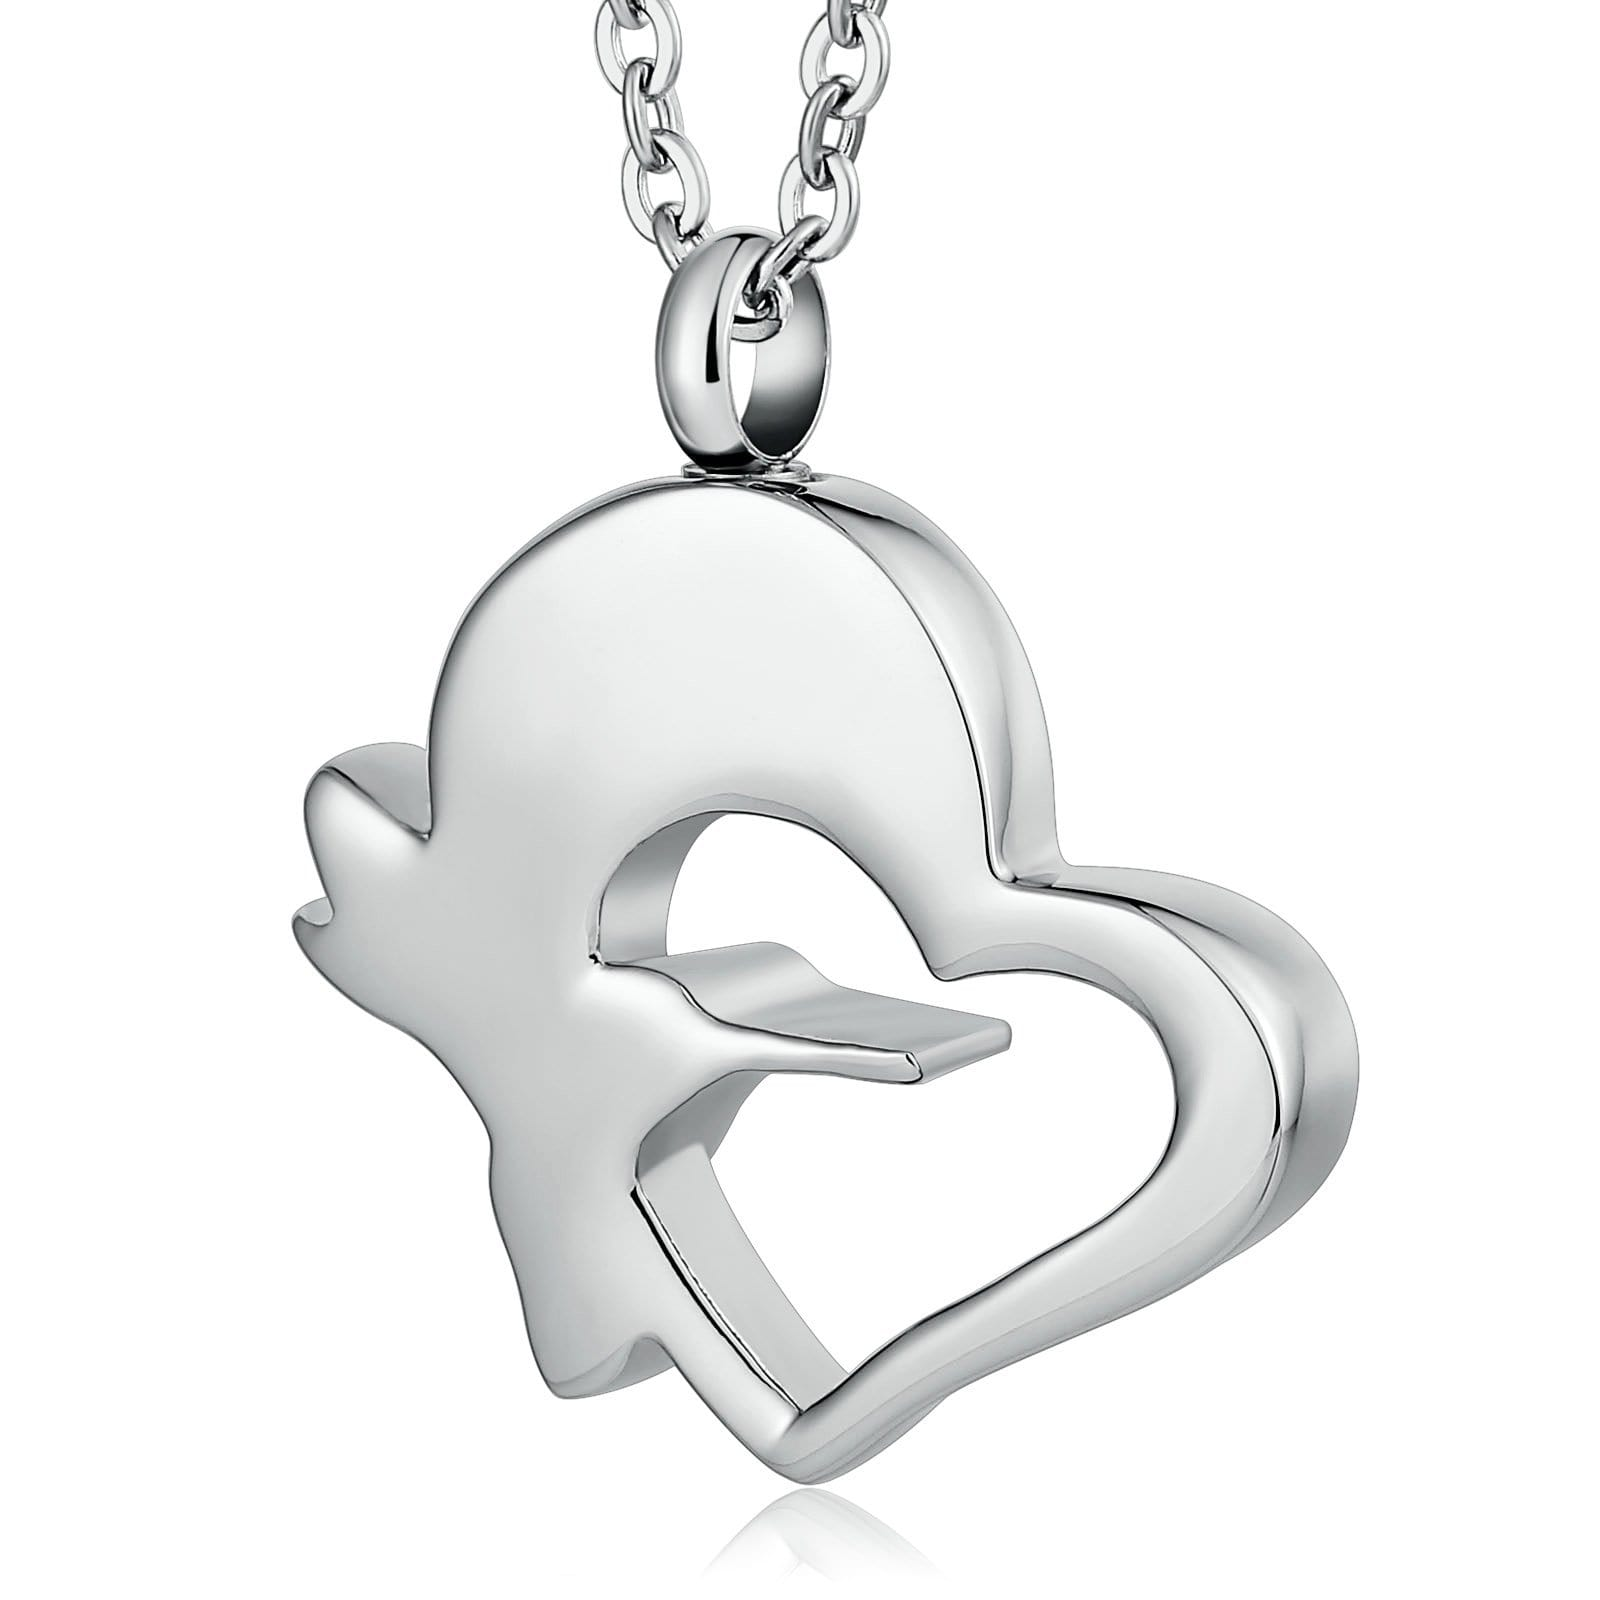 Cremation Ashes Necklace Pendant Stainless Steel Engravable 3 x 3.2cm